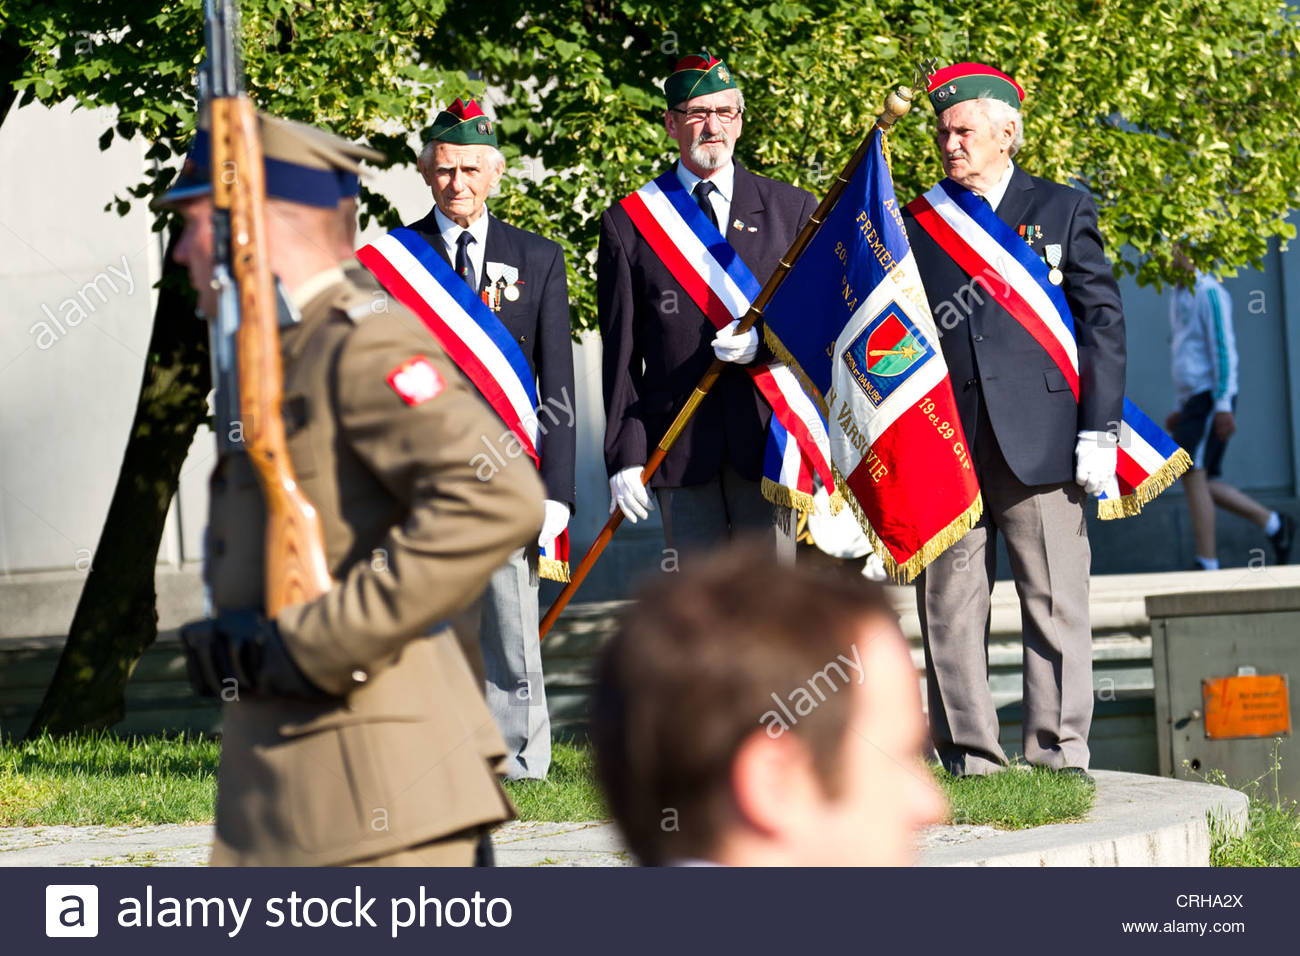 French Veterans during a ceremony in Warsaw, Poland - Stock Image